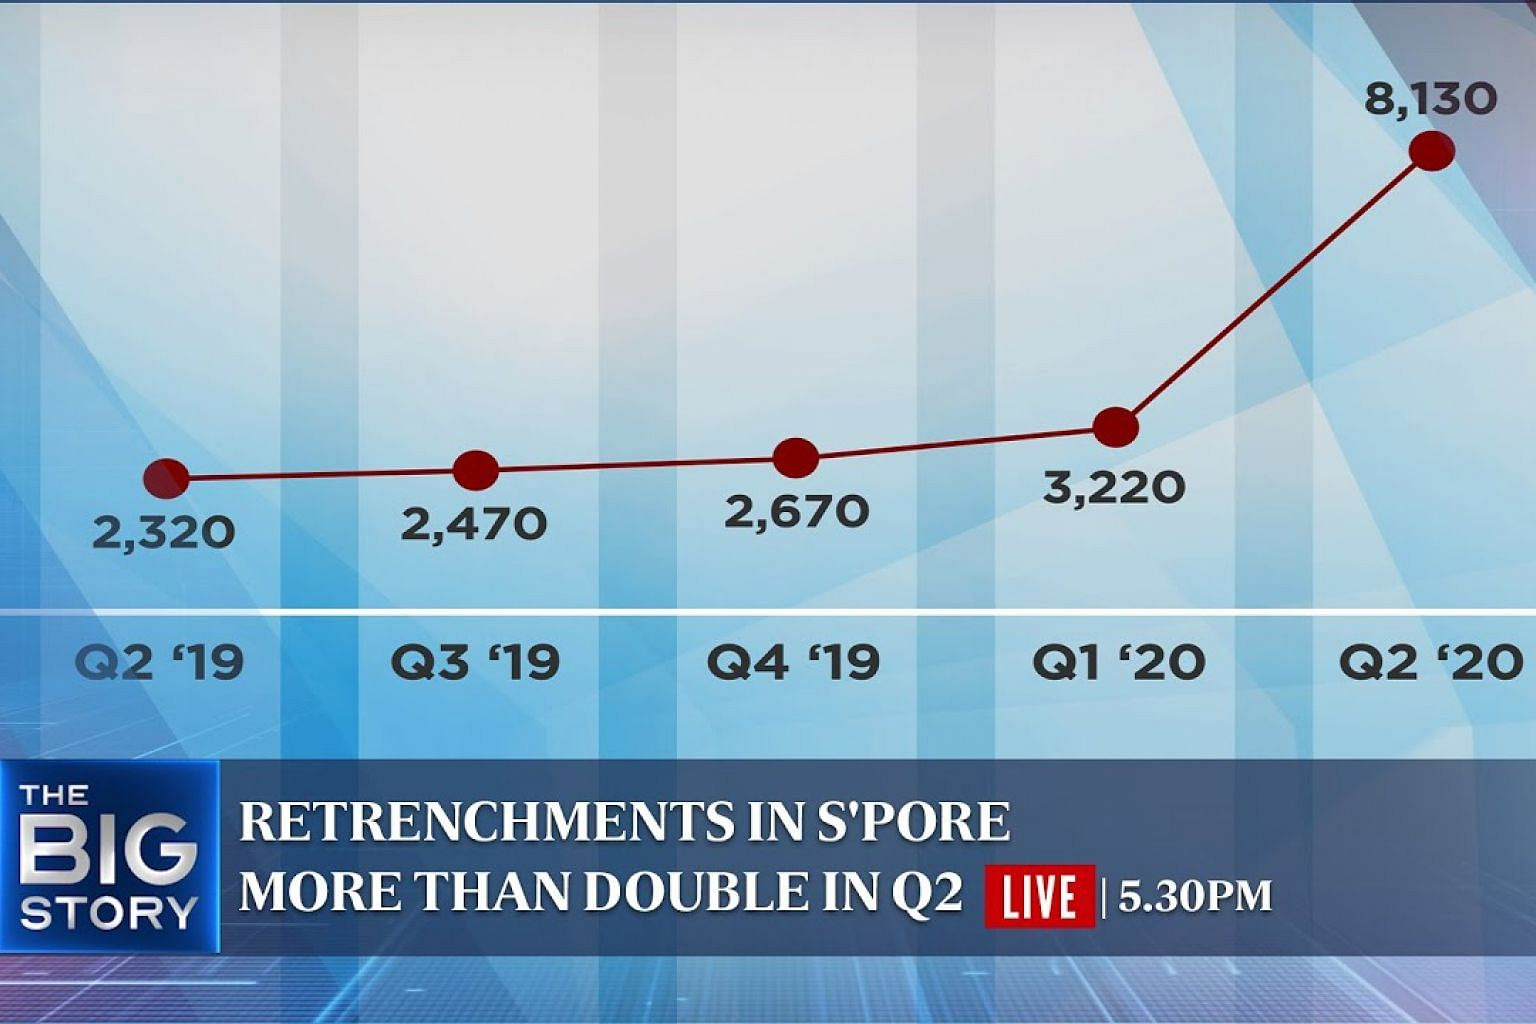 Retrenchments more than double in Q2   Record 1-day rise in global Covid-19 cases   THE BIG STORY